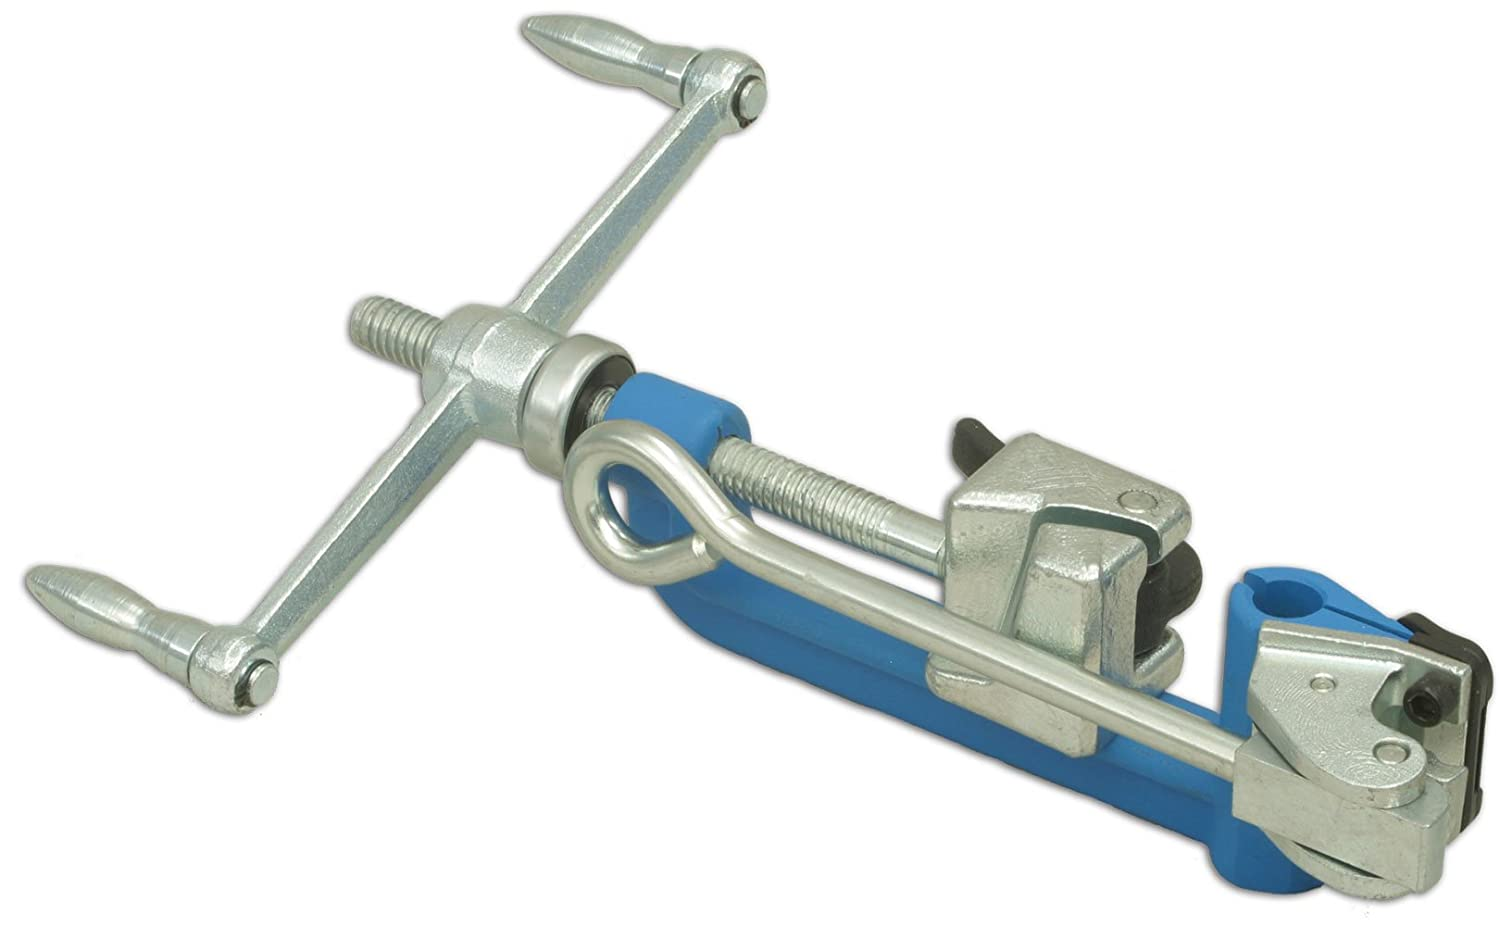 BAND-IT C00269 Junior Hand Tool For Use With BAND-IT Junior Smooth ID Clamps by Band-It B003ZHTXBC